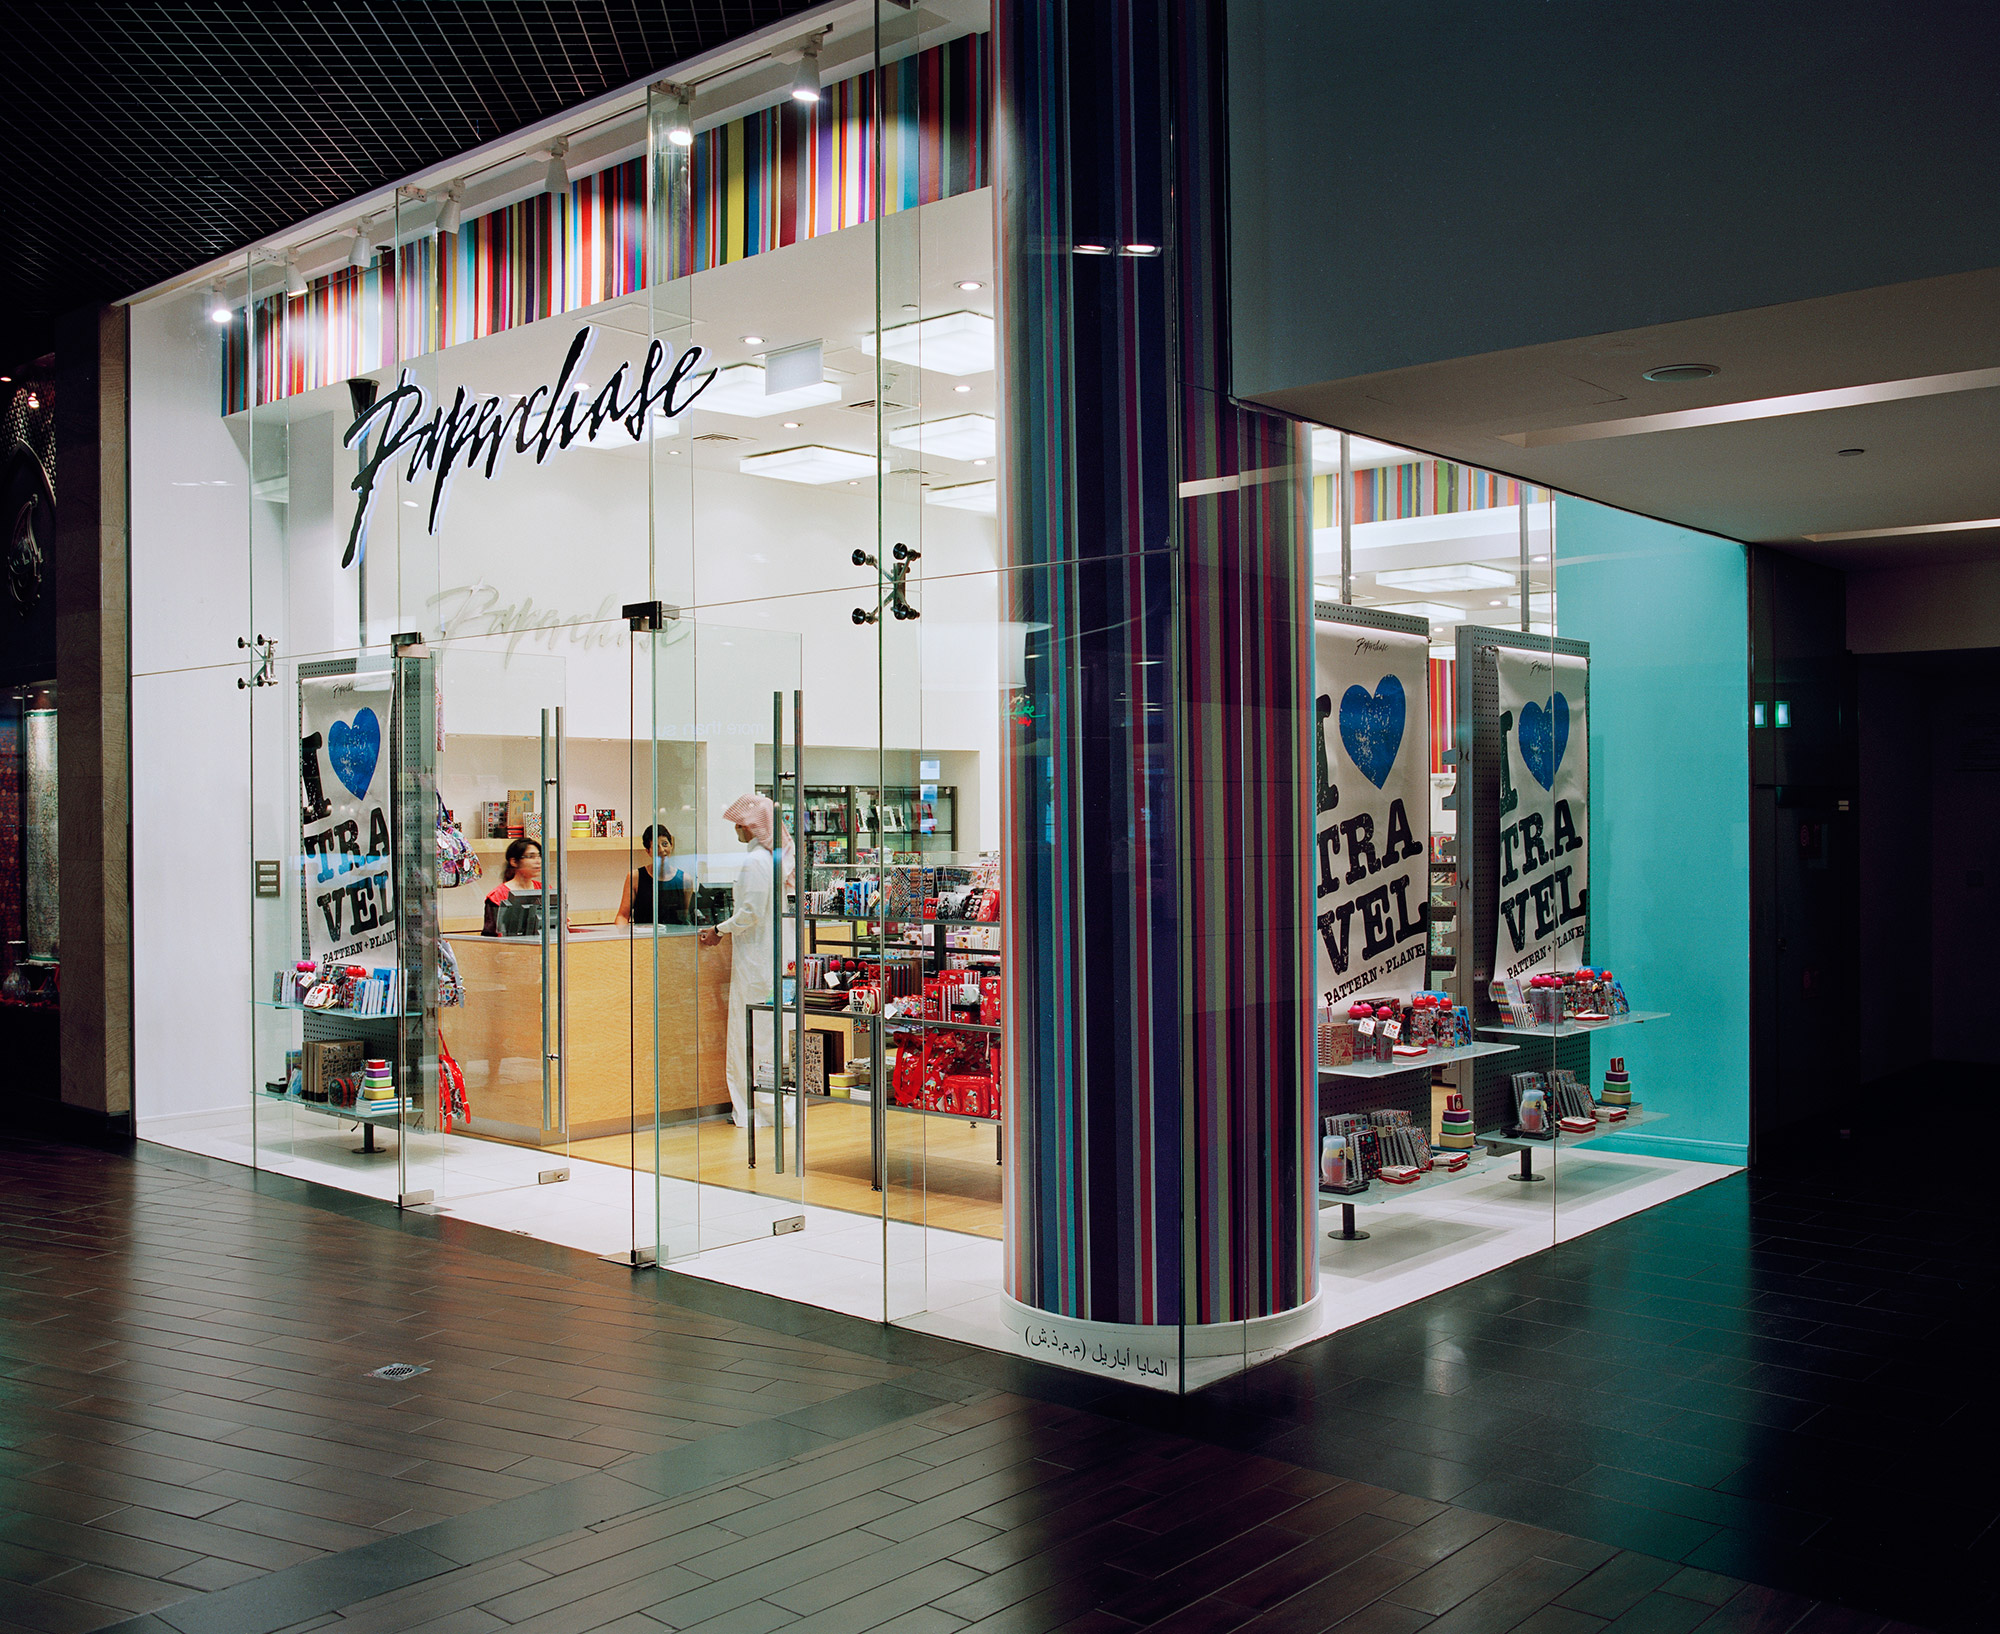 Paperchase Dubai shop front, located in the Dubai Mall